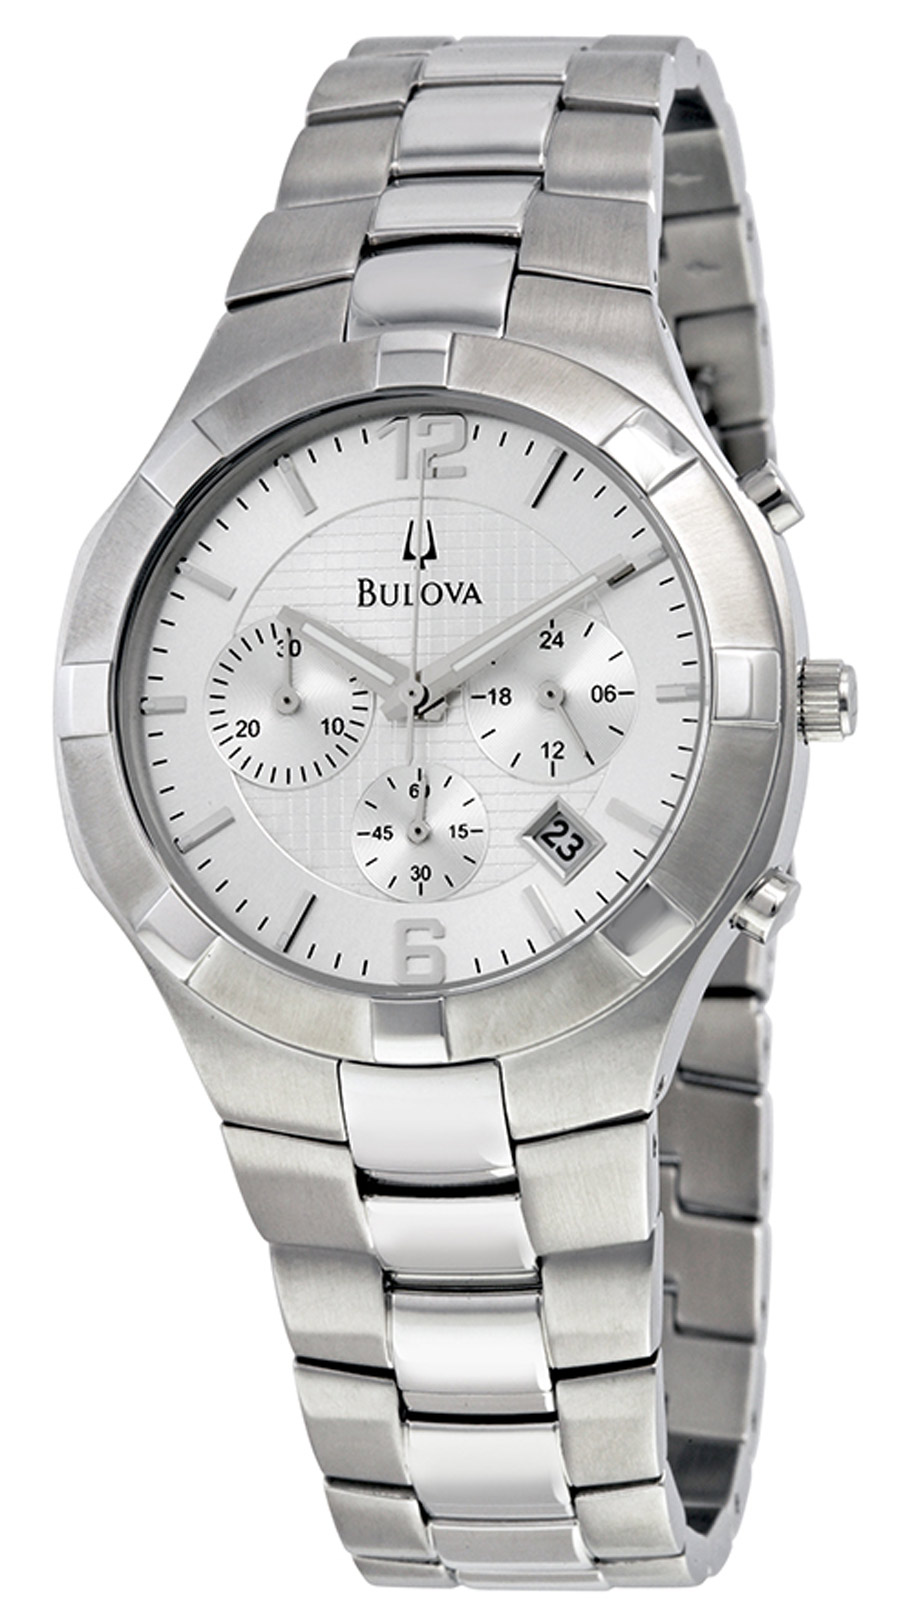 Bulova 96B146 Men's Analog Chronograph Watch Silve